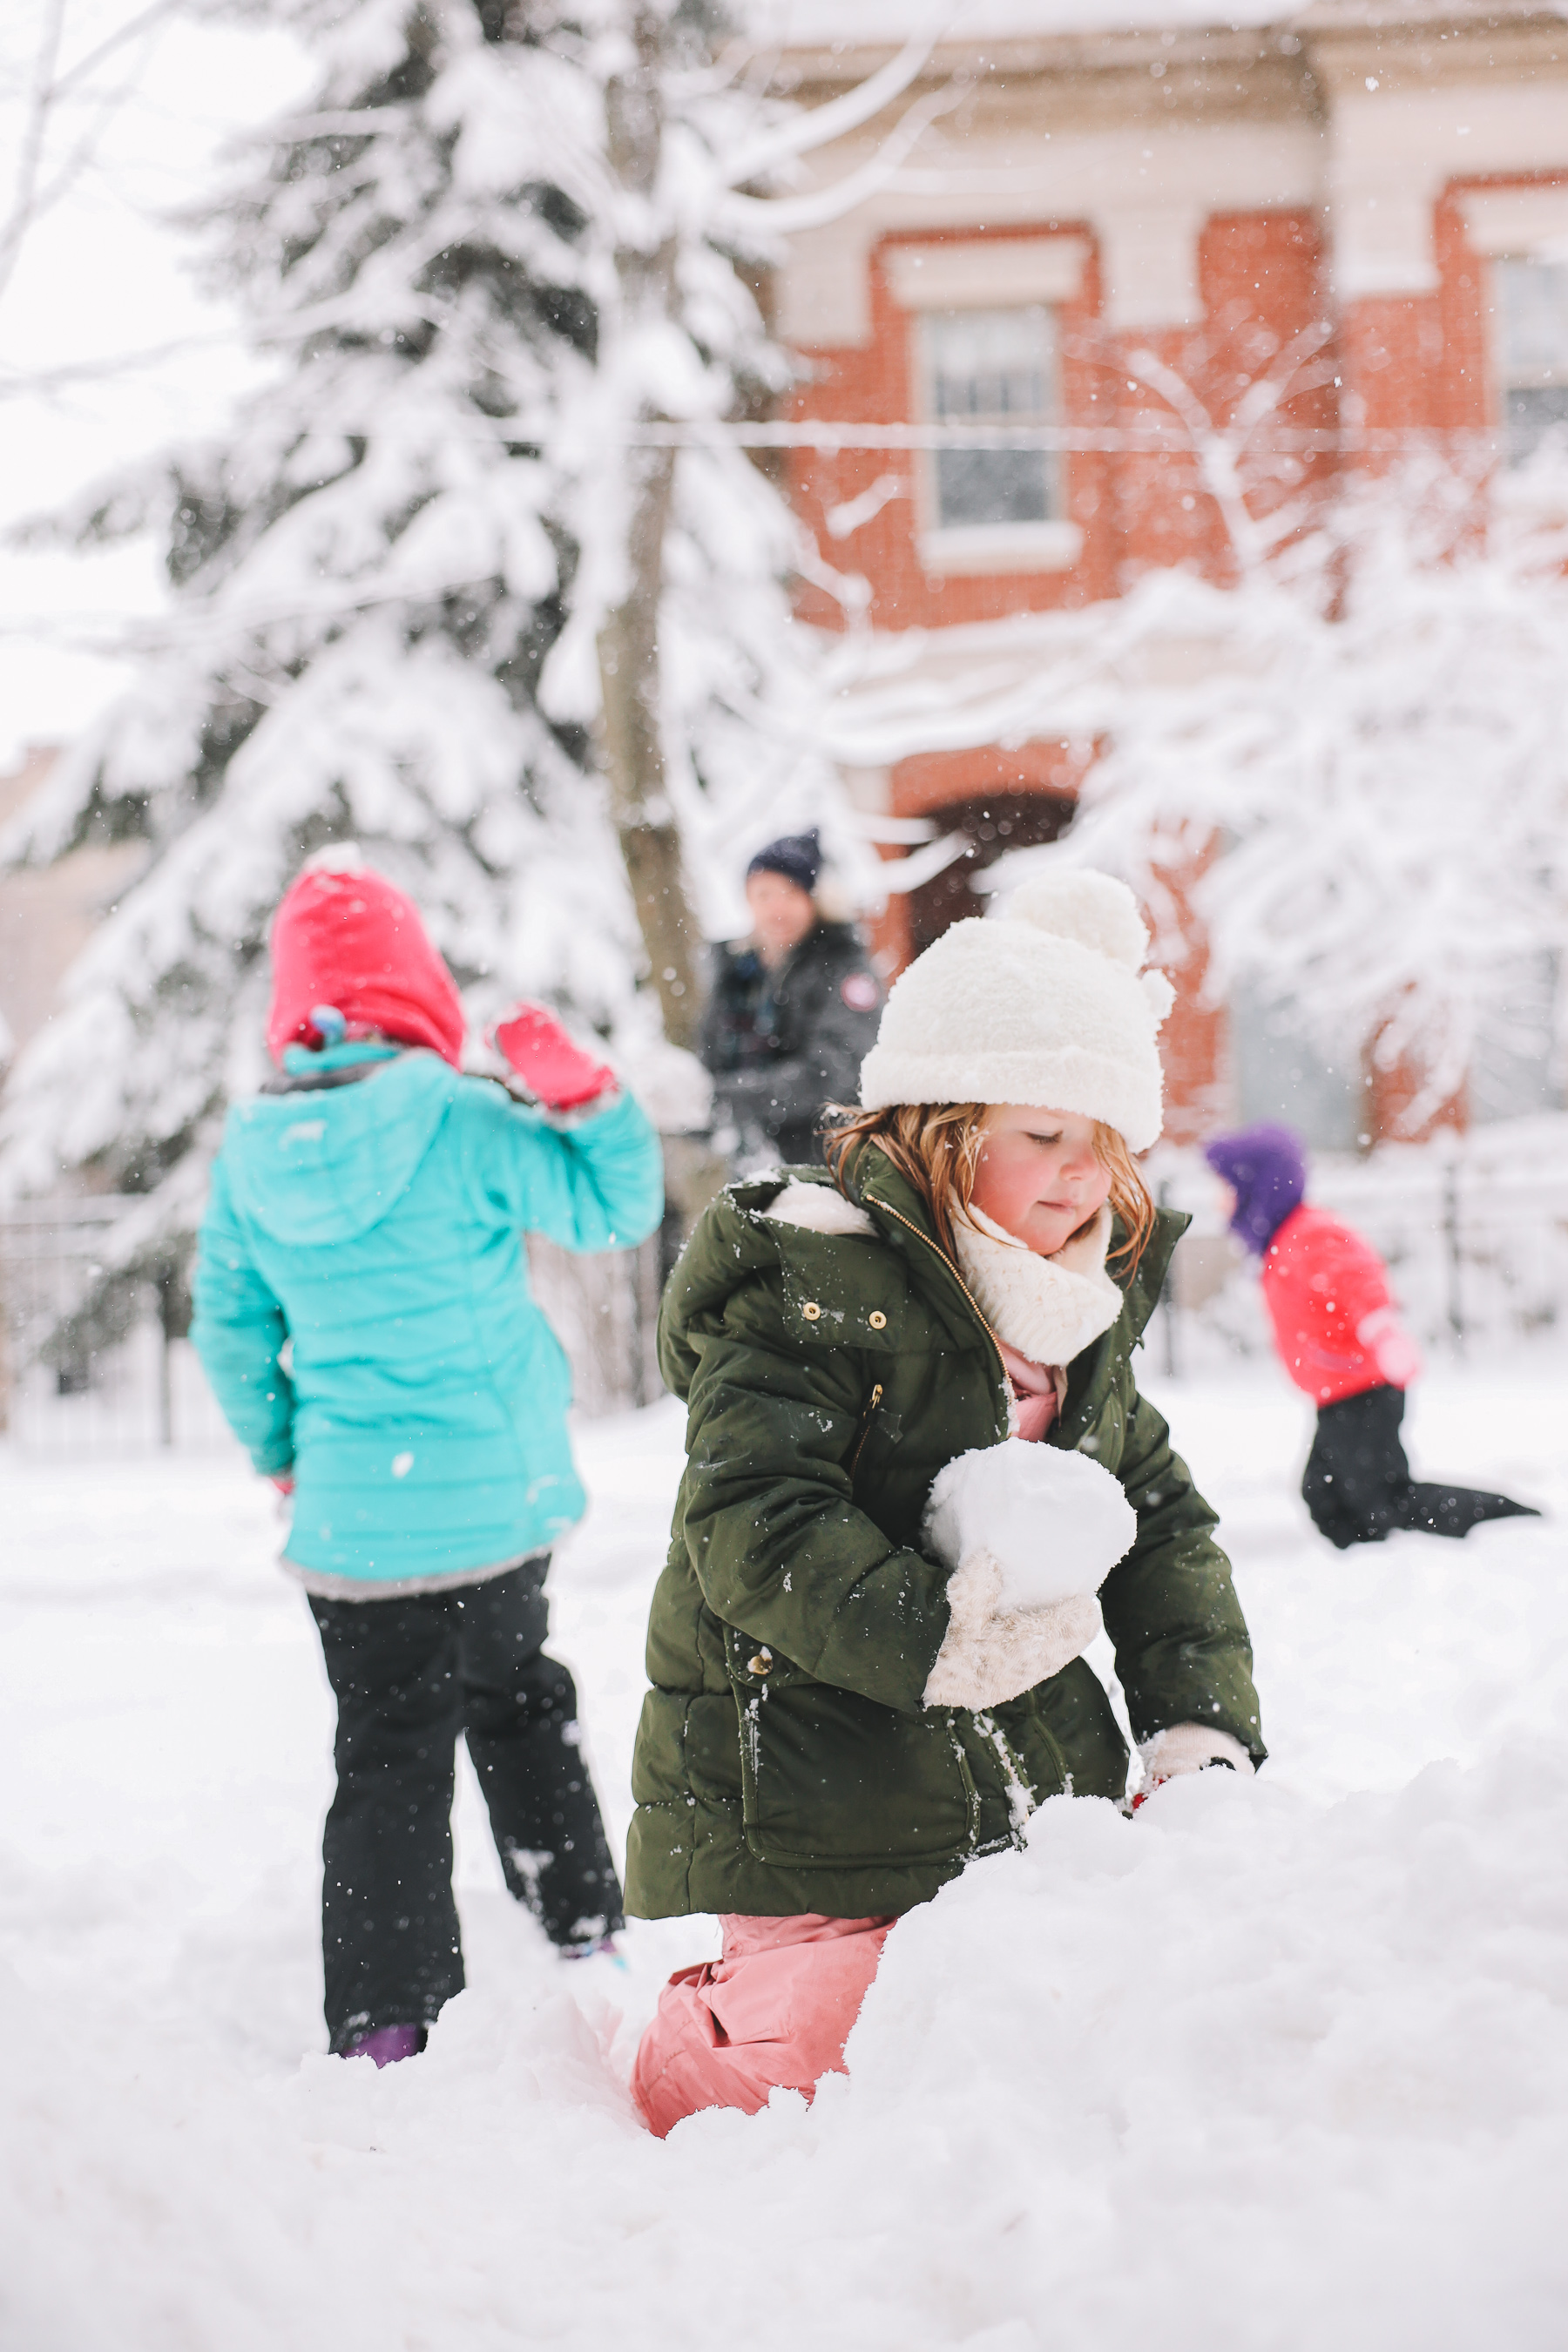 kids playing with snow | My new lens